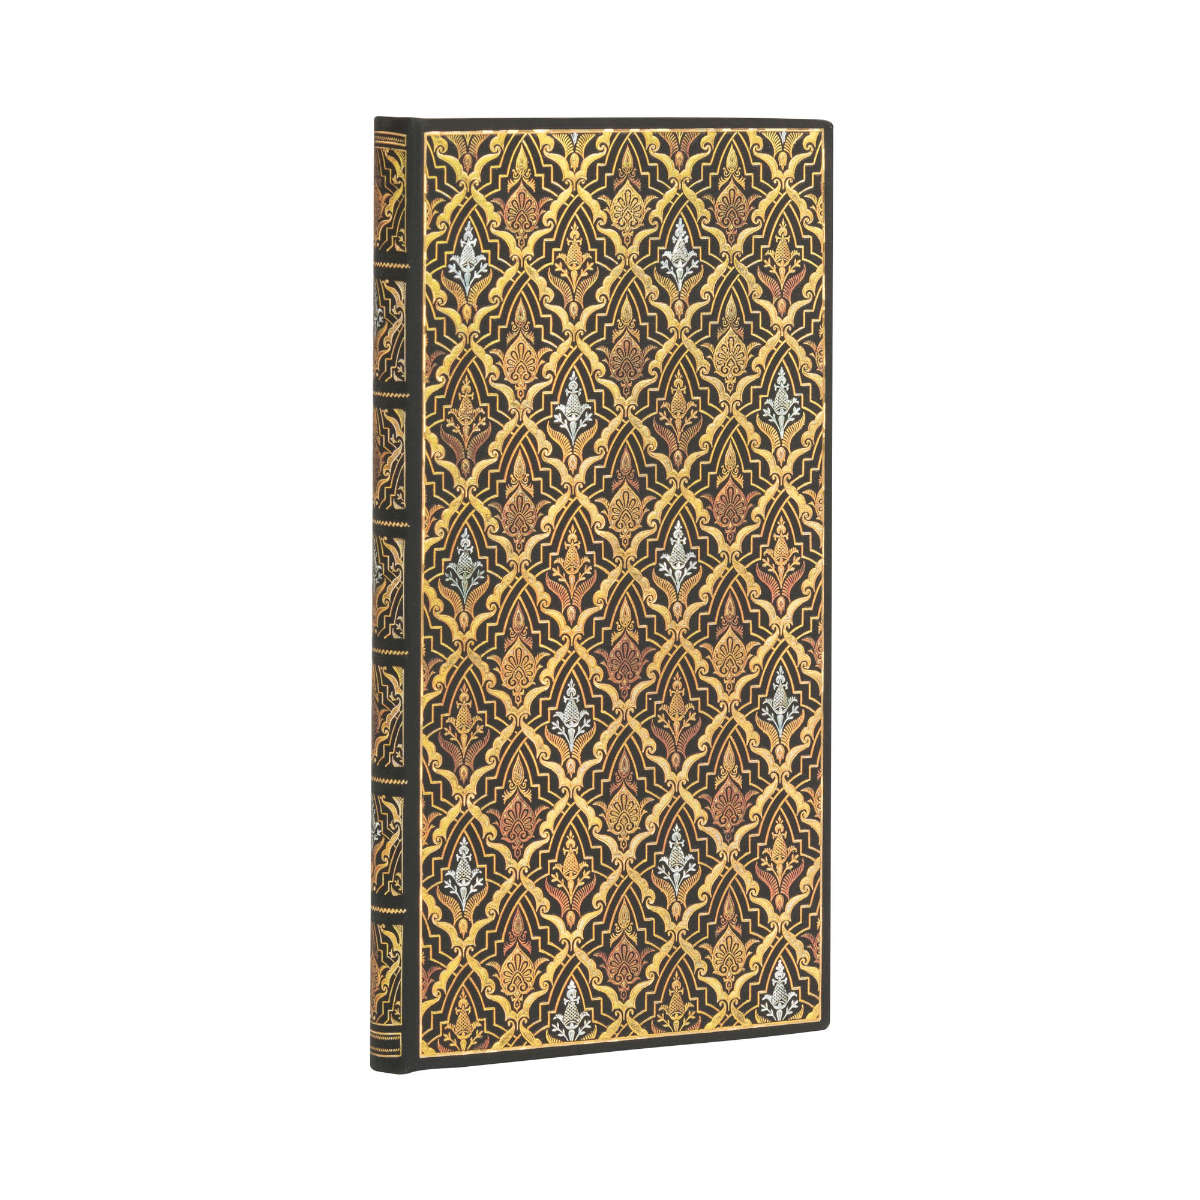 Paperblanks Voltaire Destiny Slim 3.75 x 7 Inch Journal